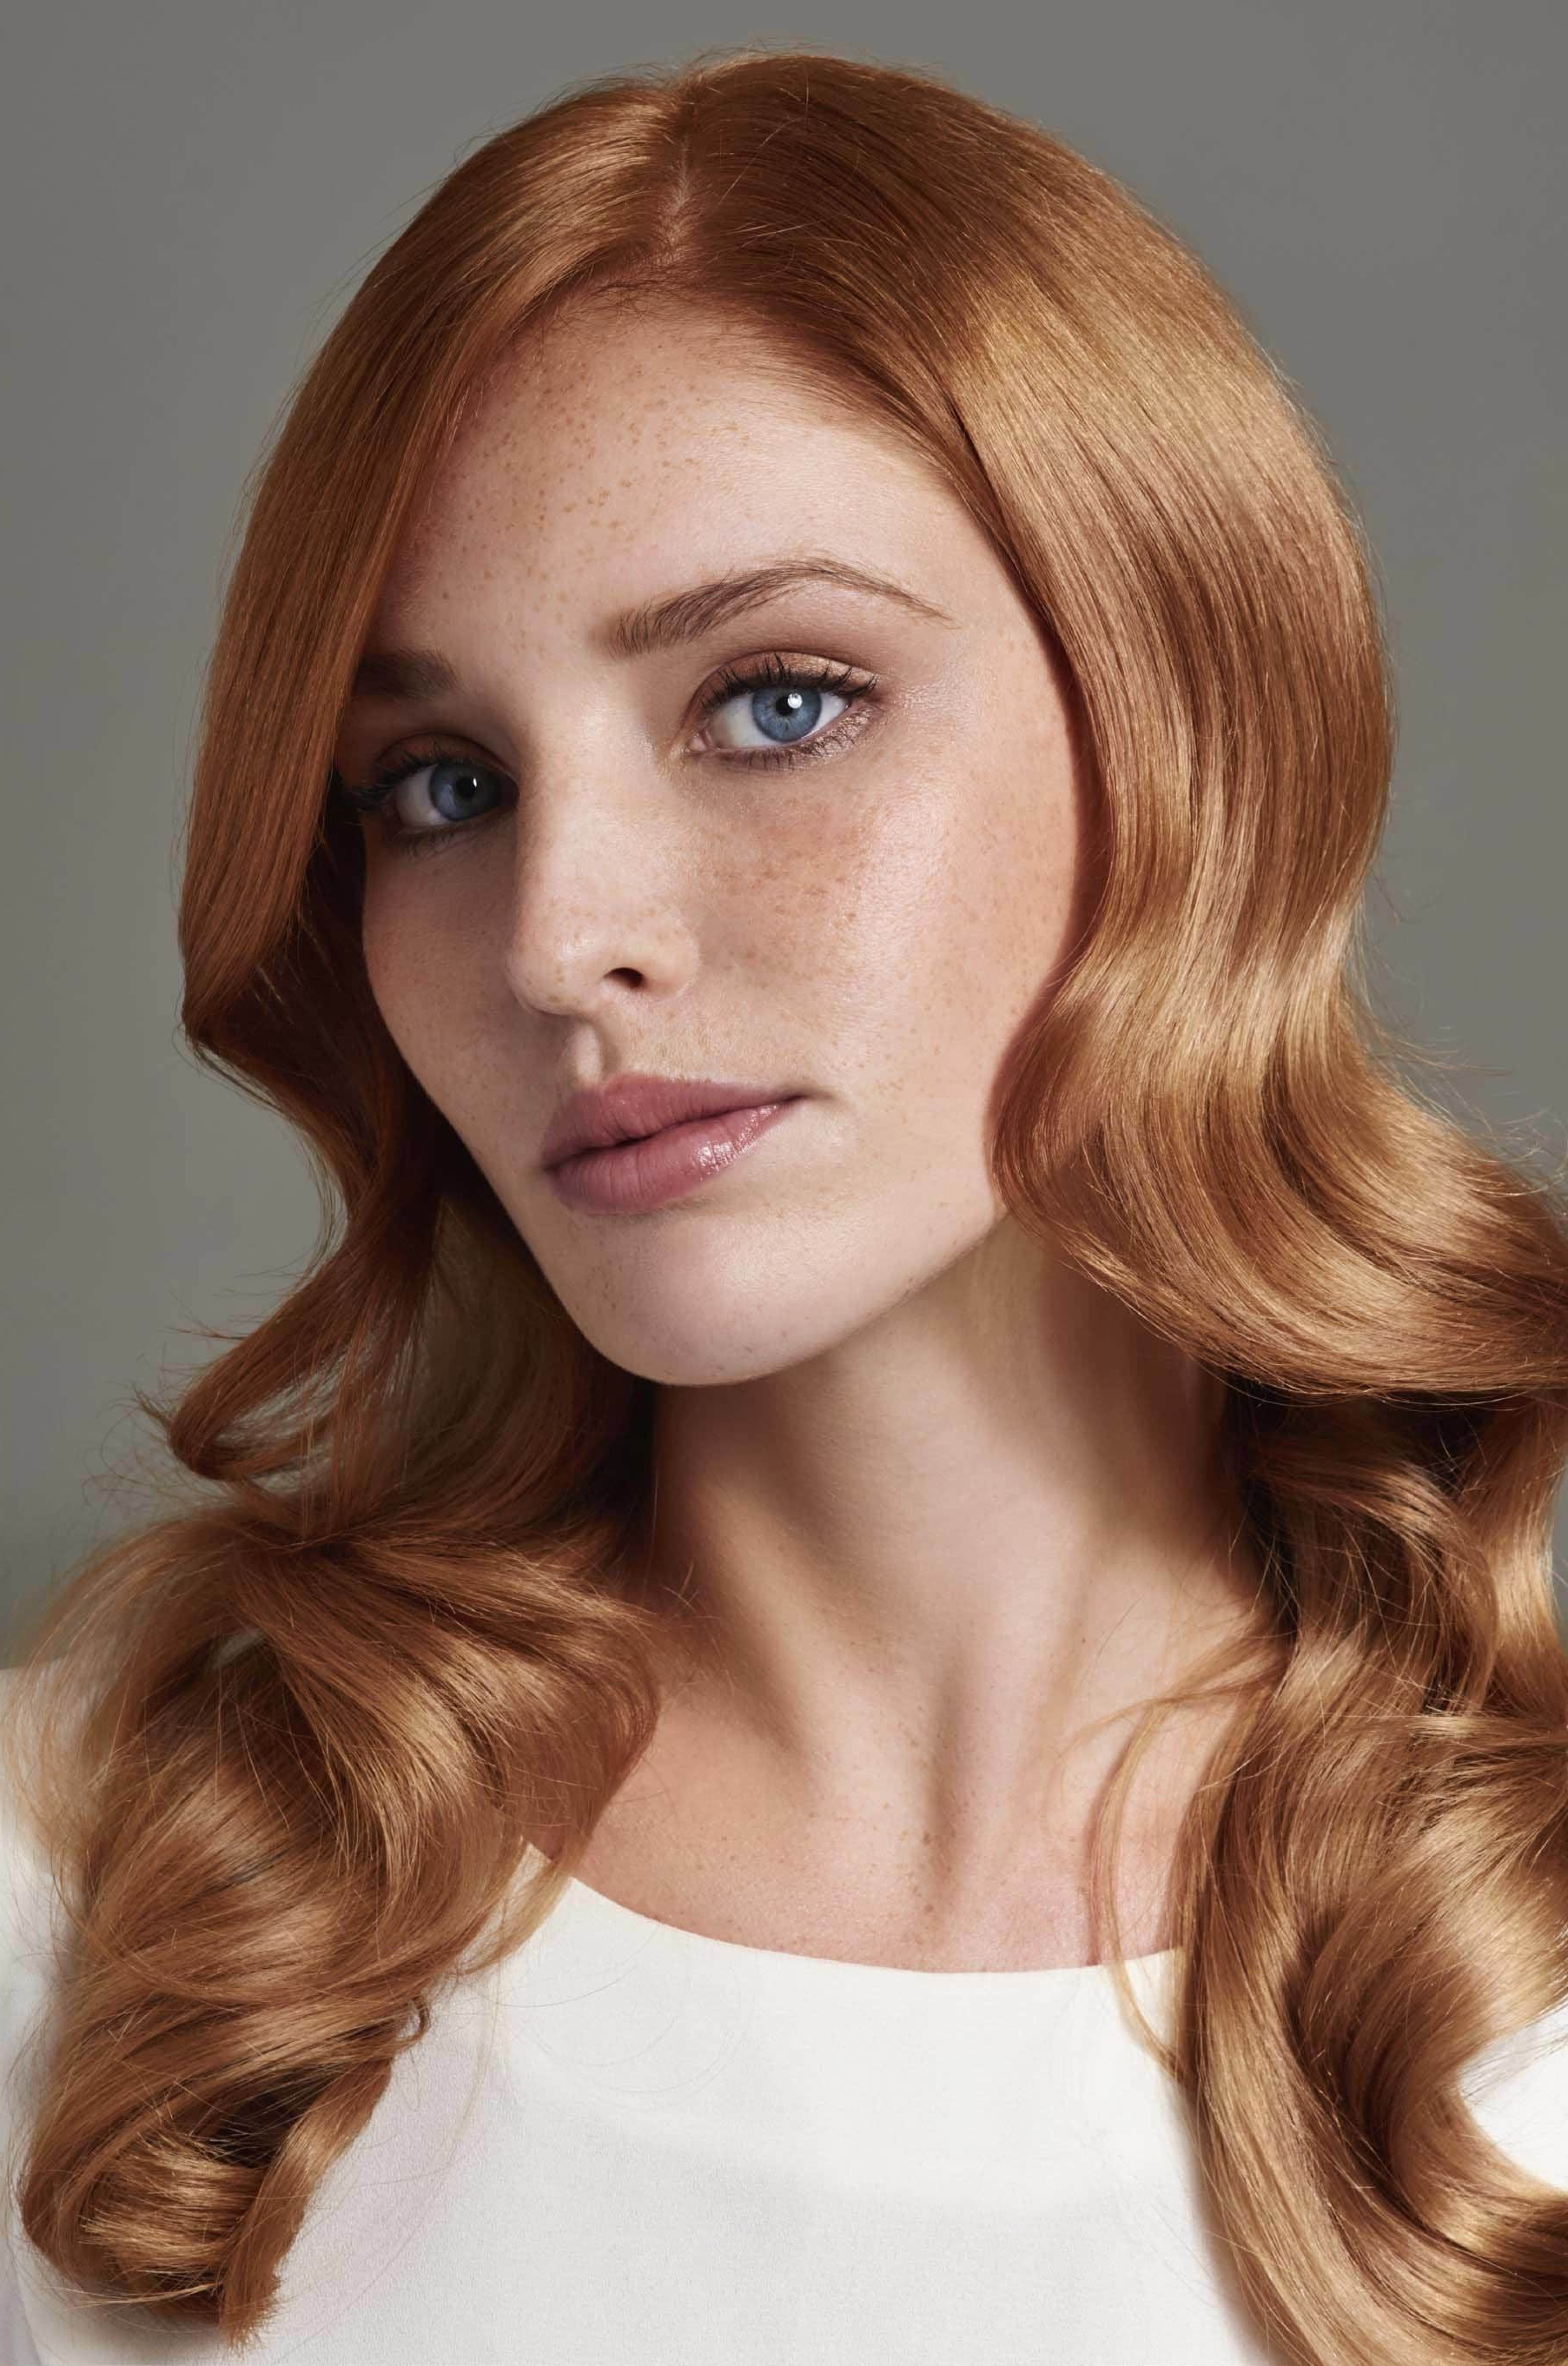 34 Cool Ways To Wear Strawberry Red Blonde Hair: Tones, Shades And Regarding Strawberry Blonde Short Hairstyles (View 23 of 25)